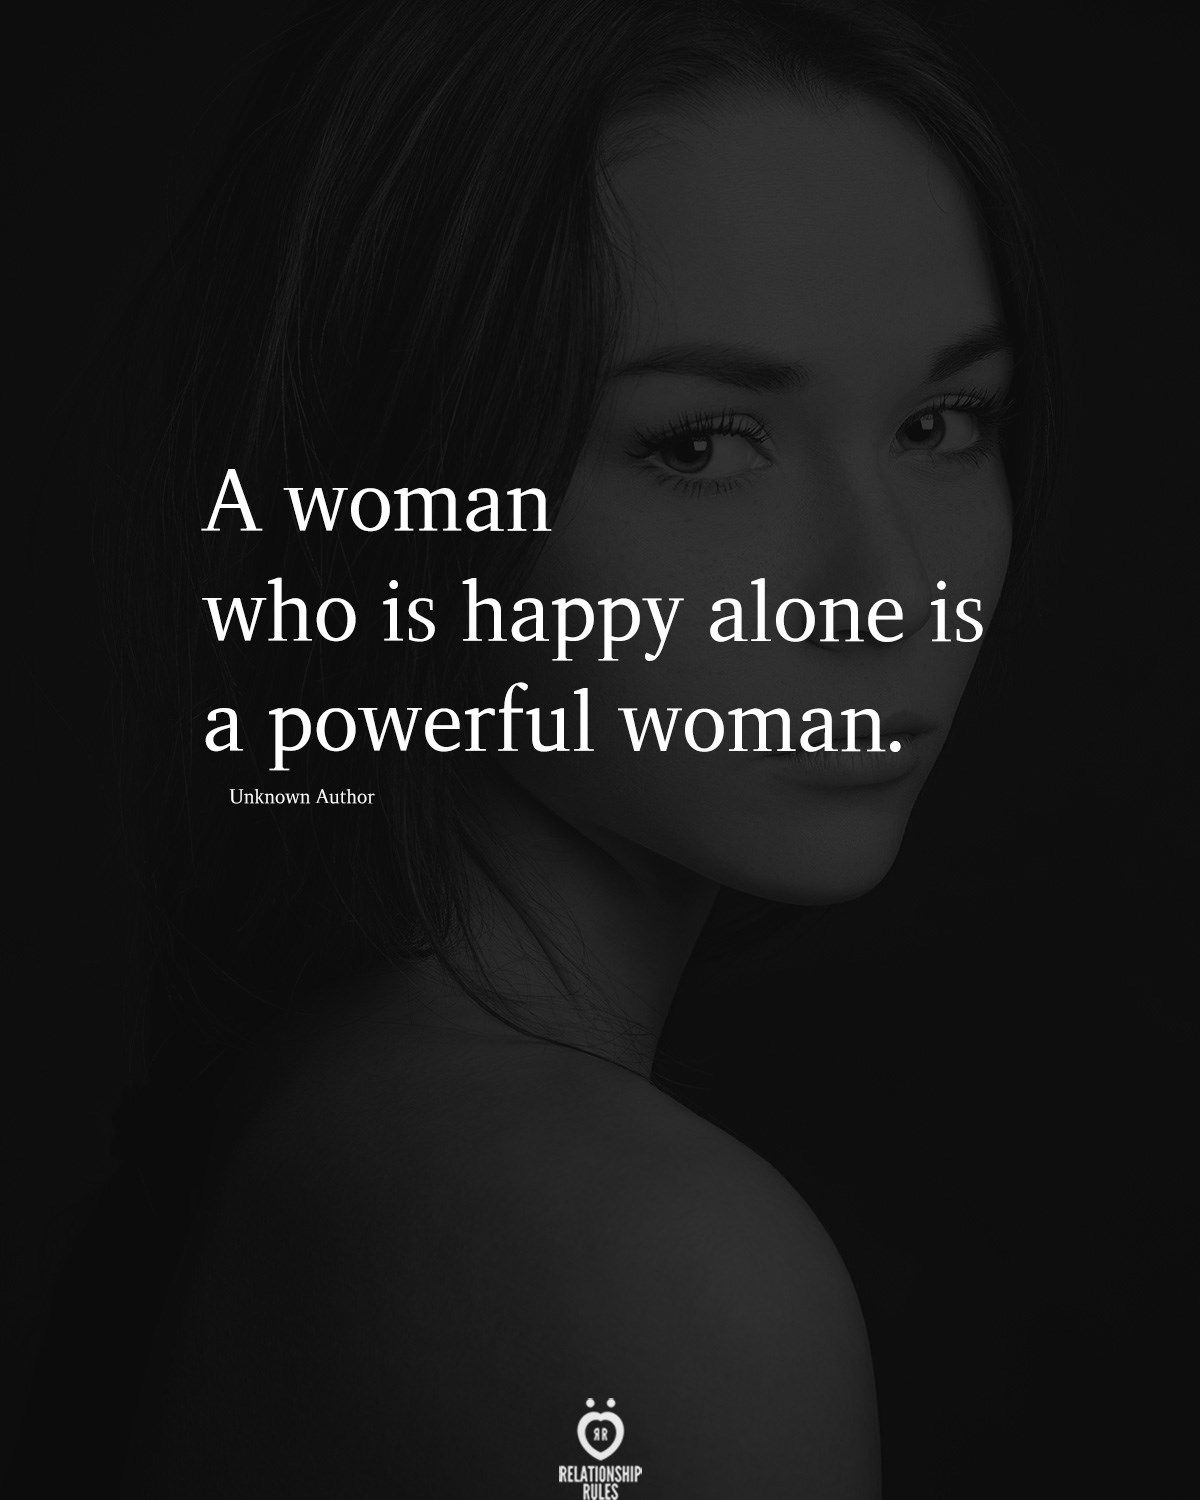 A Woman Who Is Happy Alone Is A Powerful Woman.